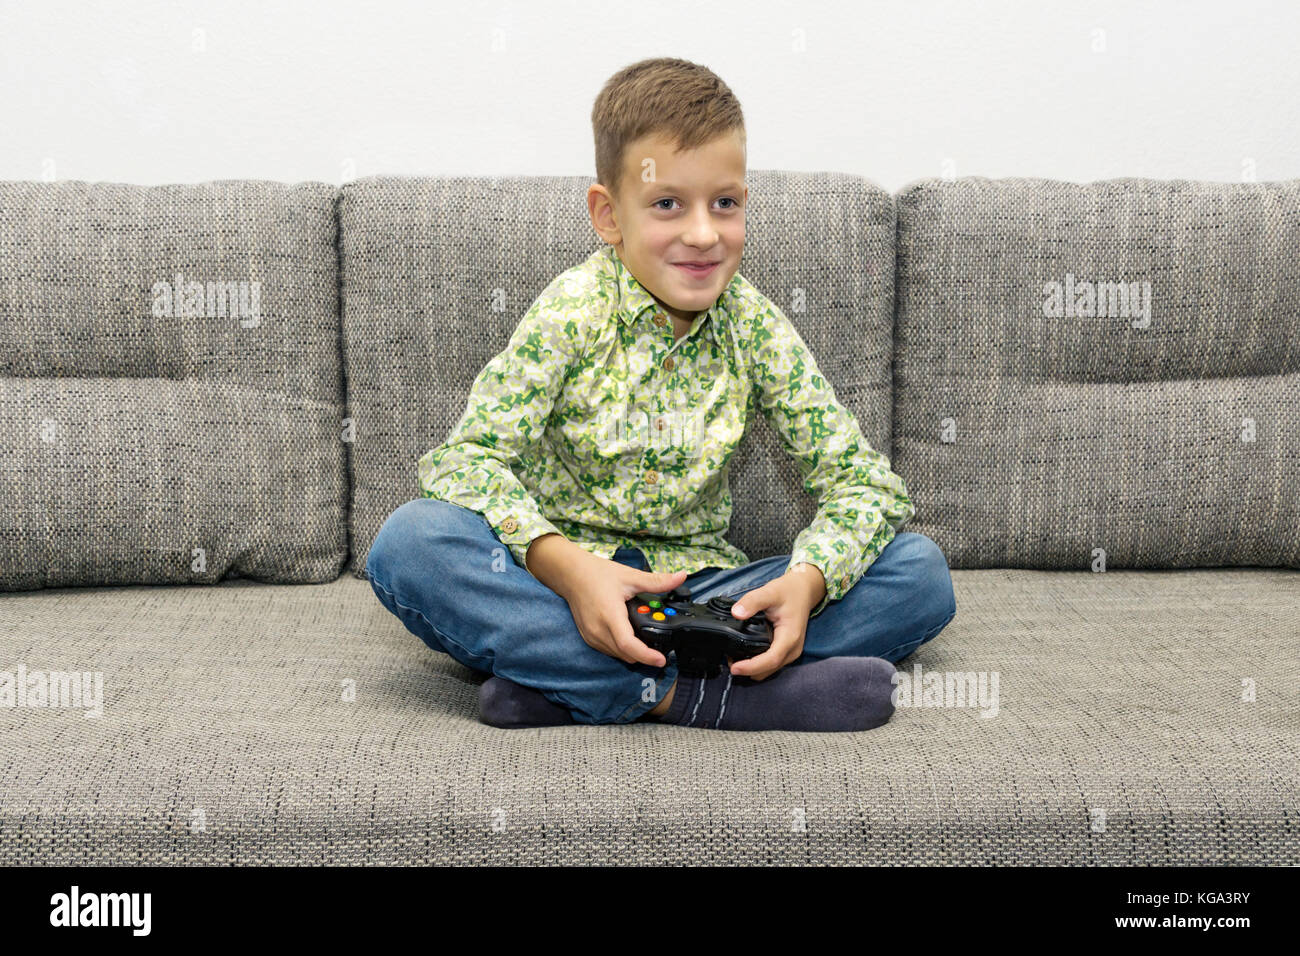 leisure, children, technology and people concept - smiling boy with joystick playing video game at home - Stock Image